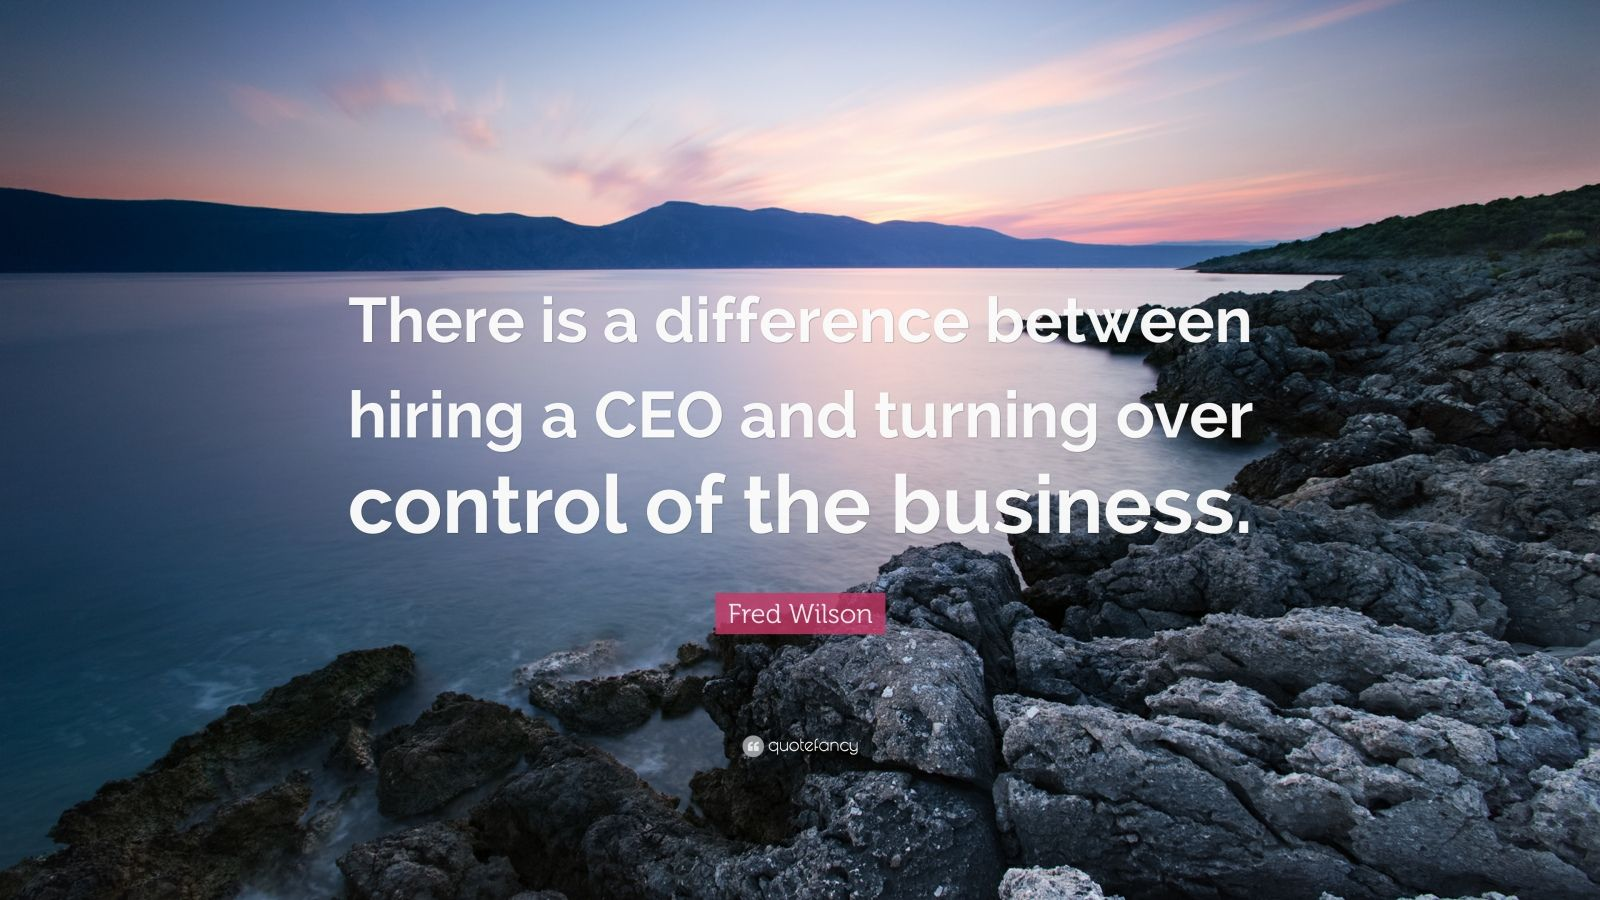 """Fred Wilson Quote: """"There is a difference between hiring a CEO and turning over control of the business."""""""